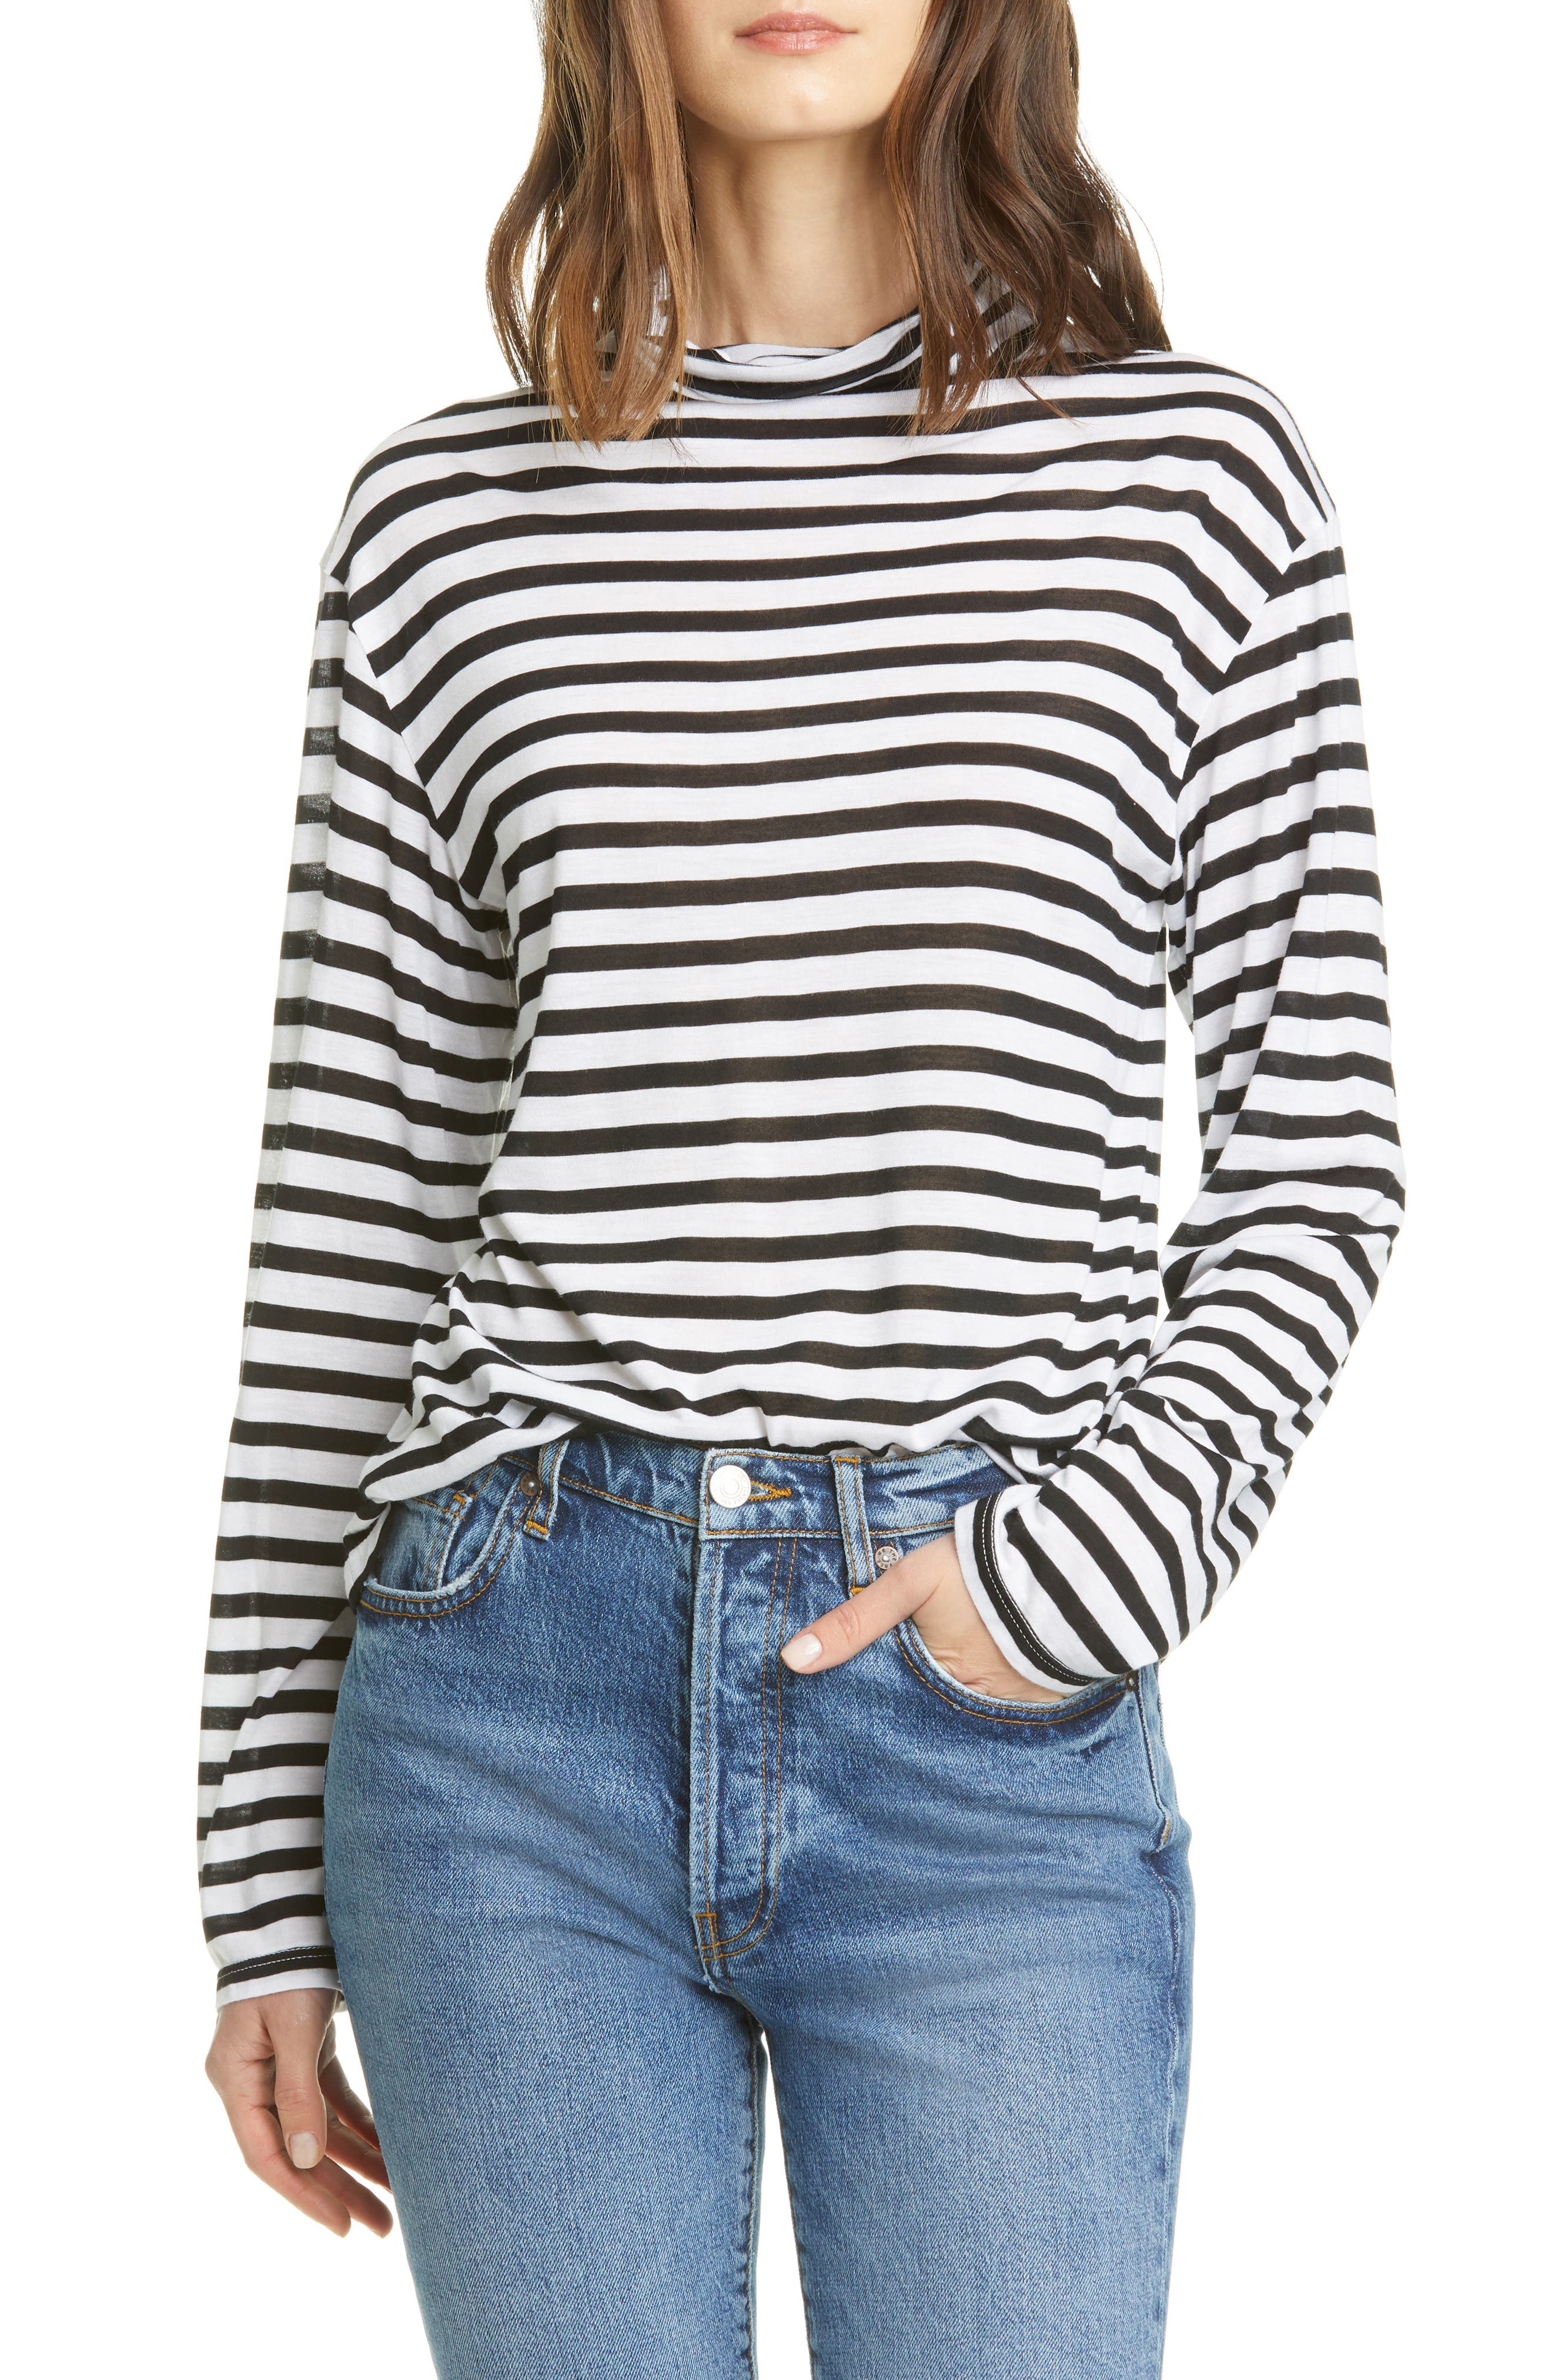 ATM Womens Striped Scoop Neck Top